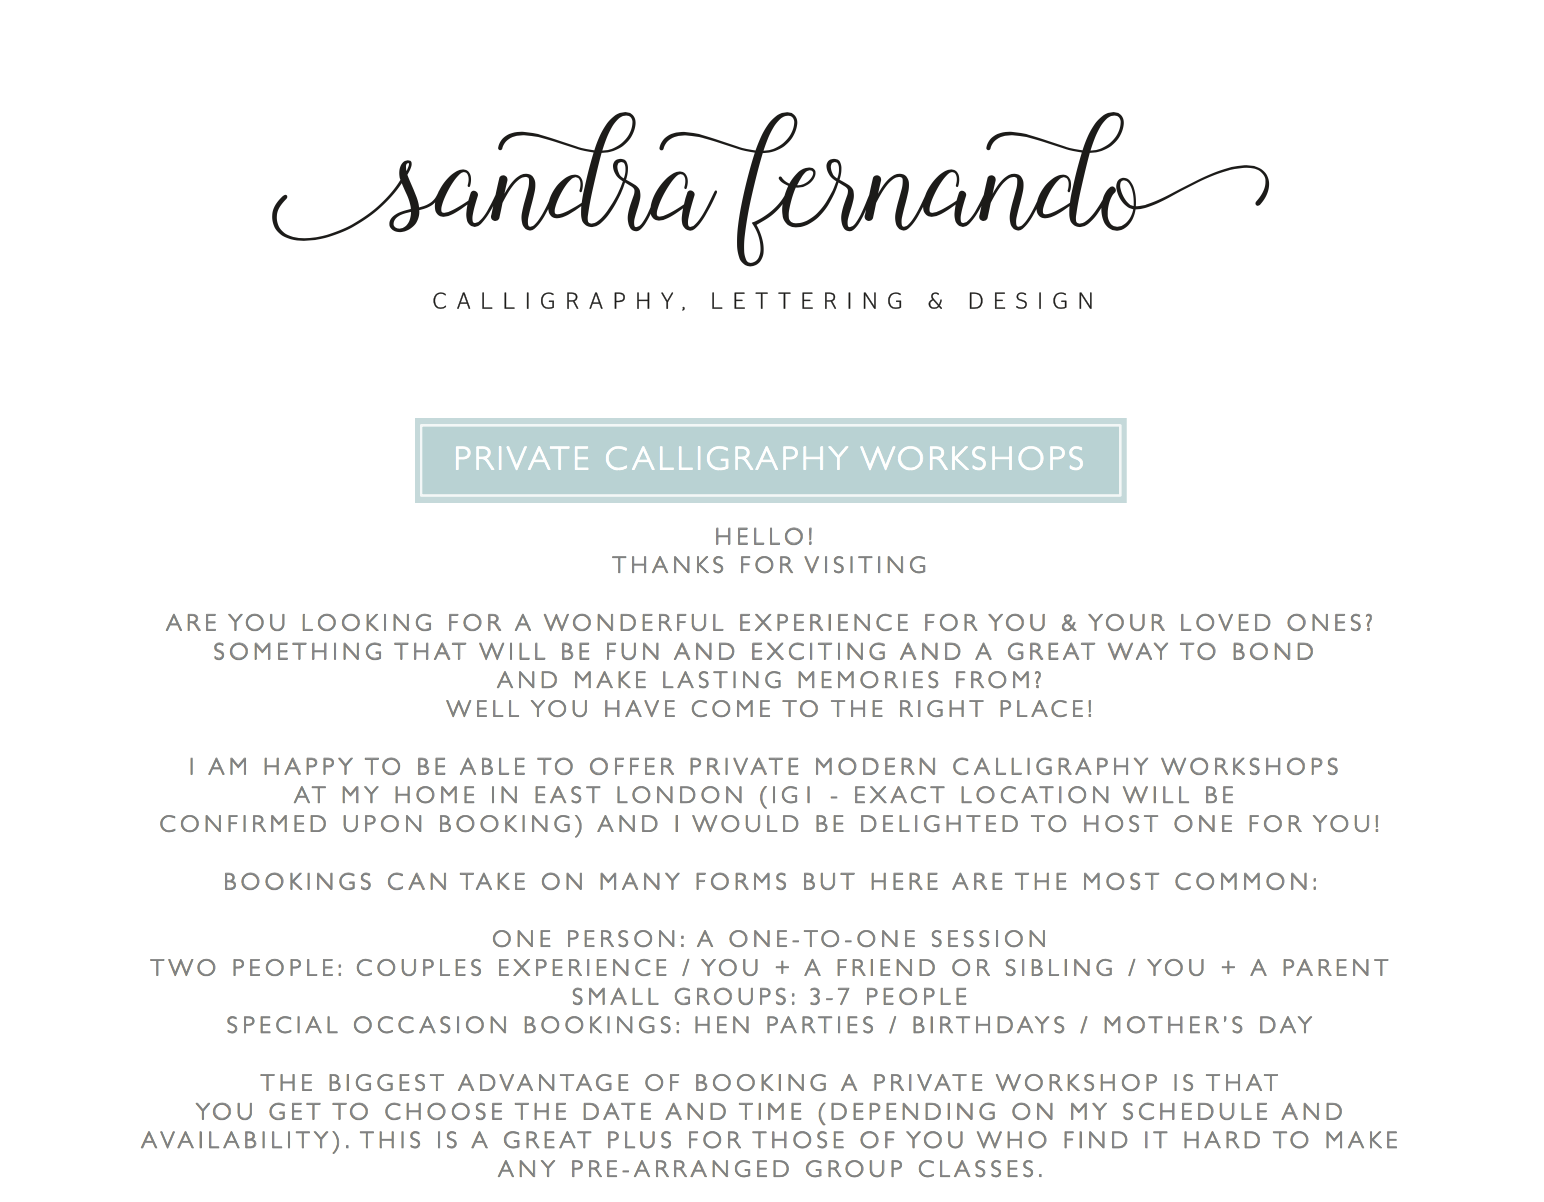 calligraphy workshop discount